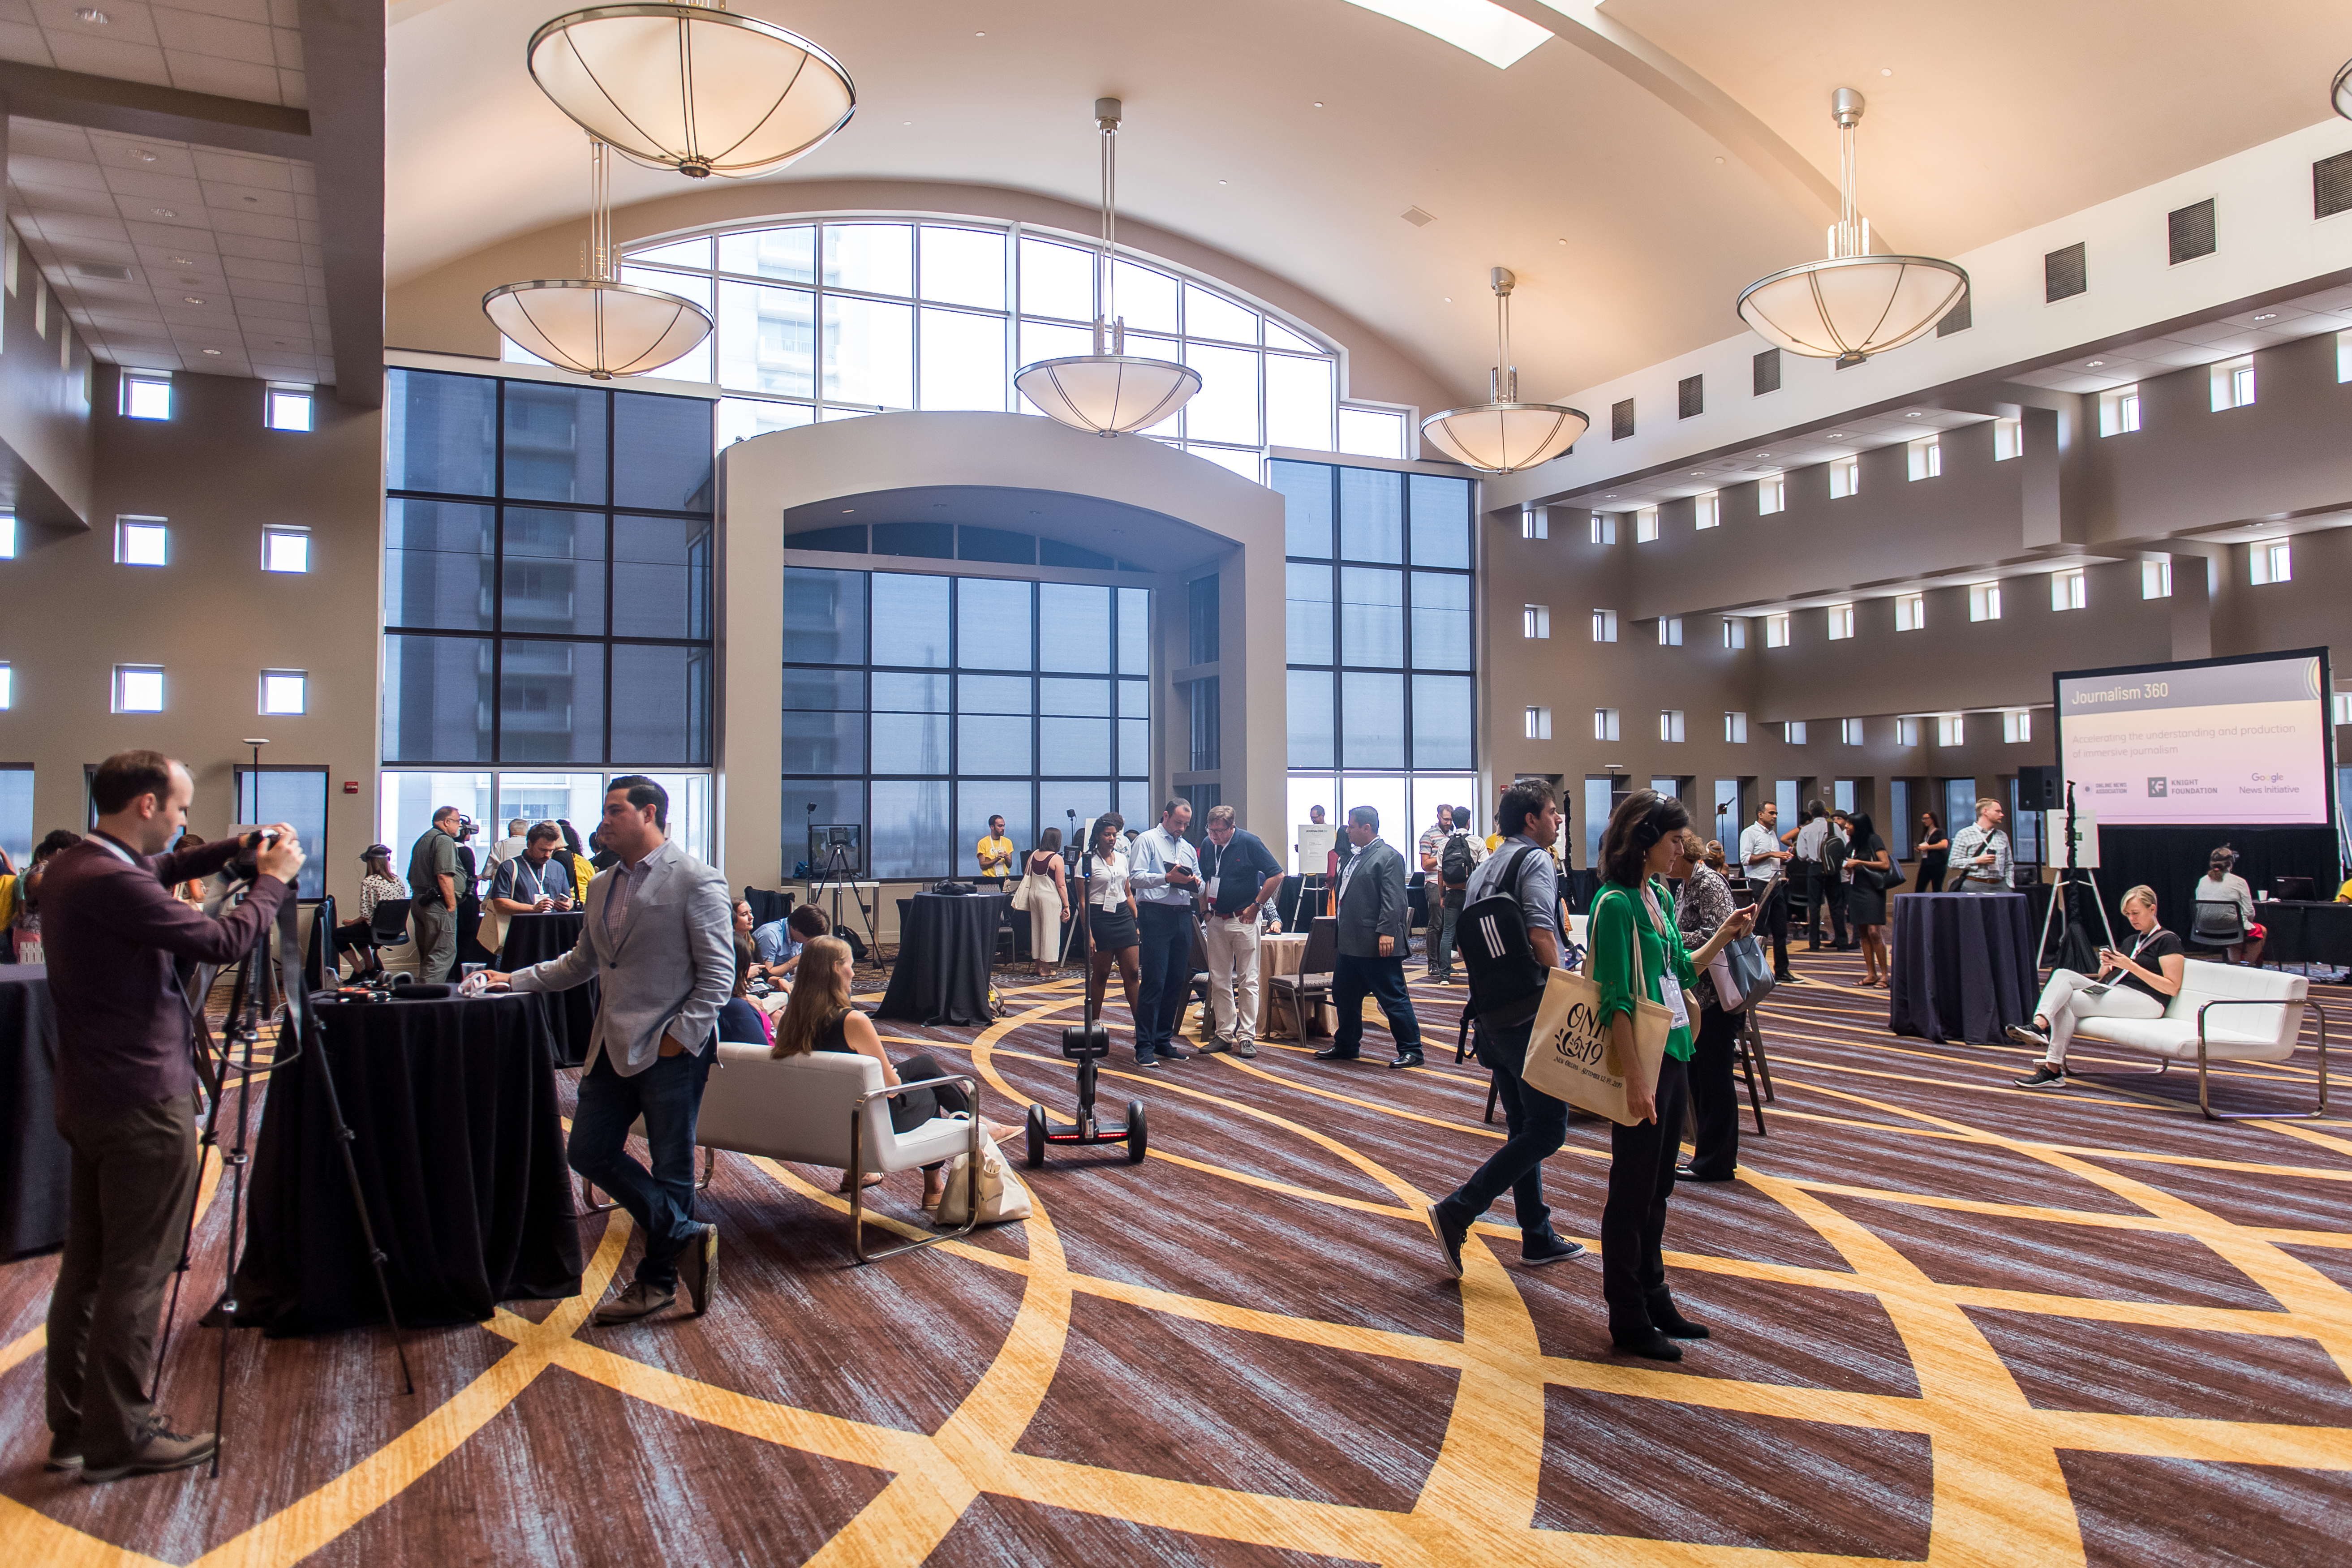 A view of the venue for the Journalism 360 Immersive Storytelling Festival at the 2019 Online News Association Conference in New Orleans.